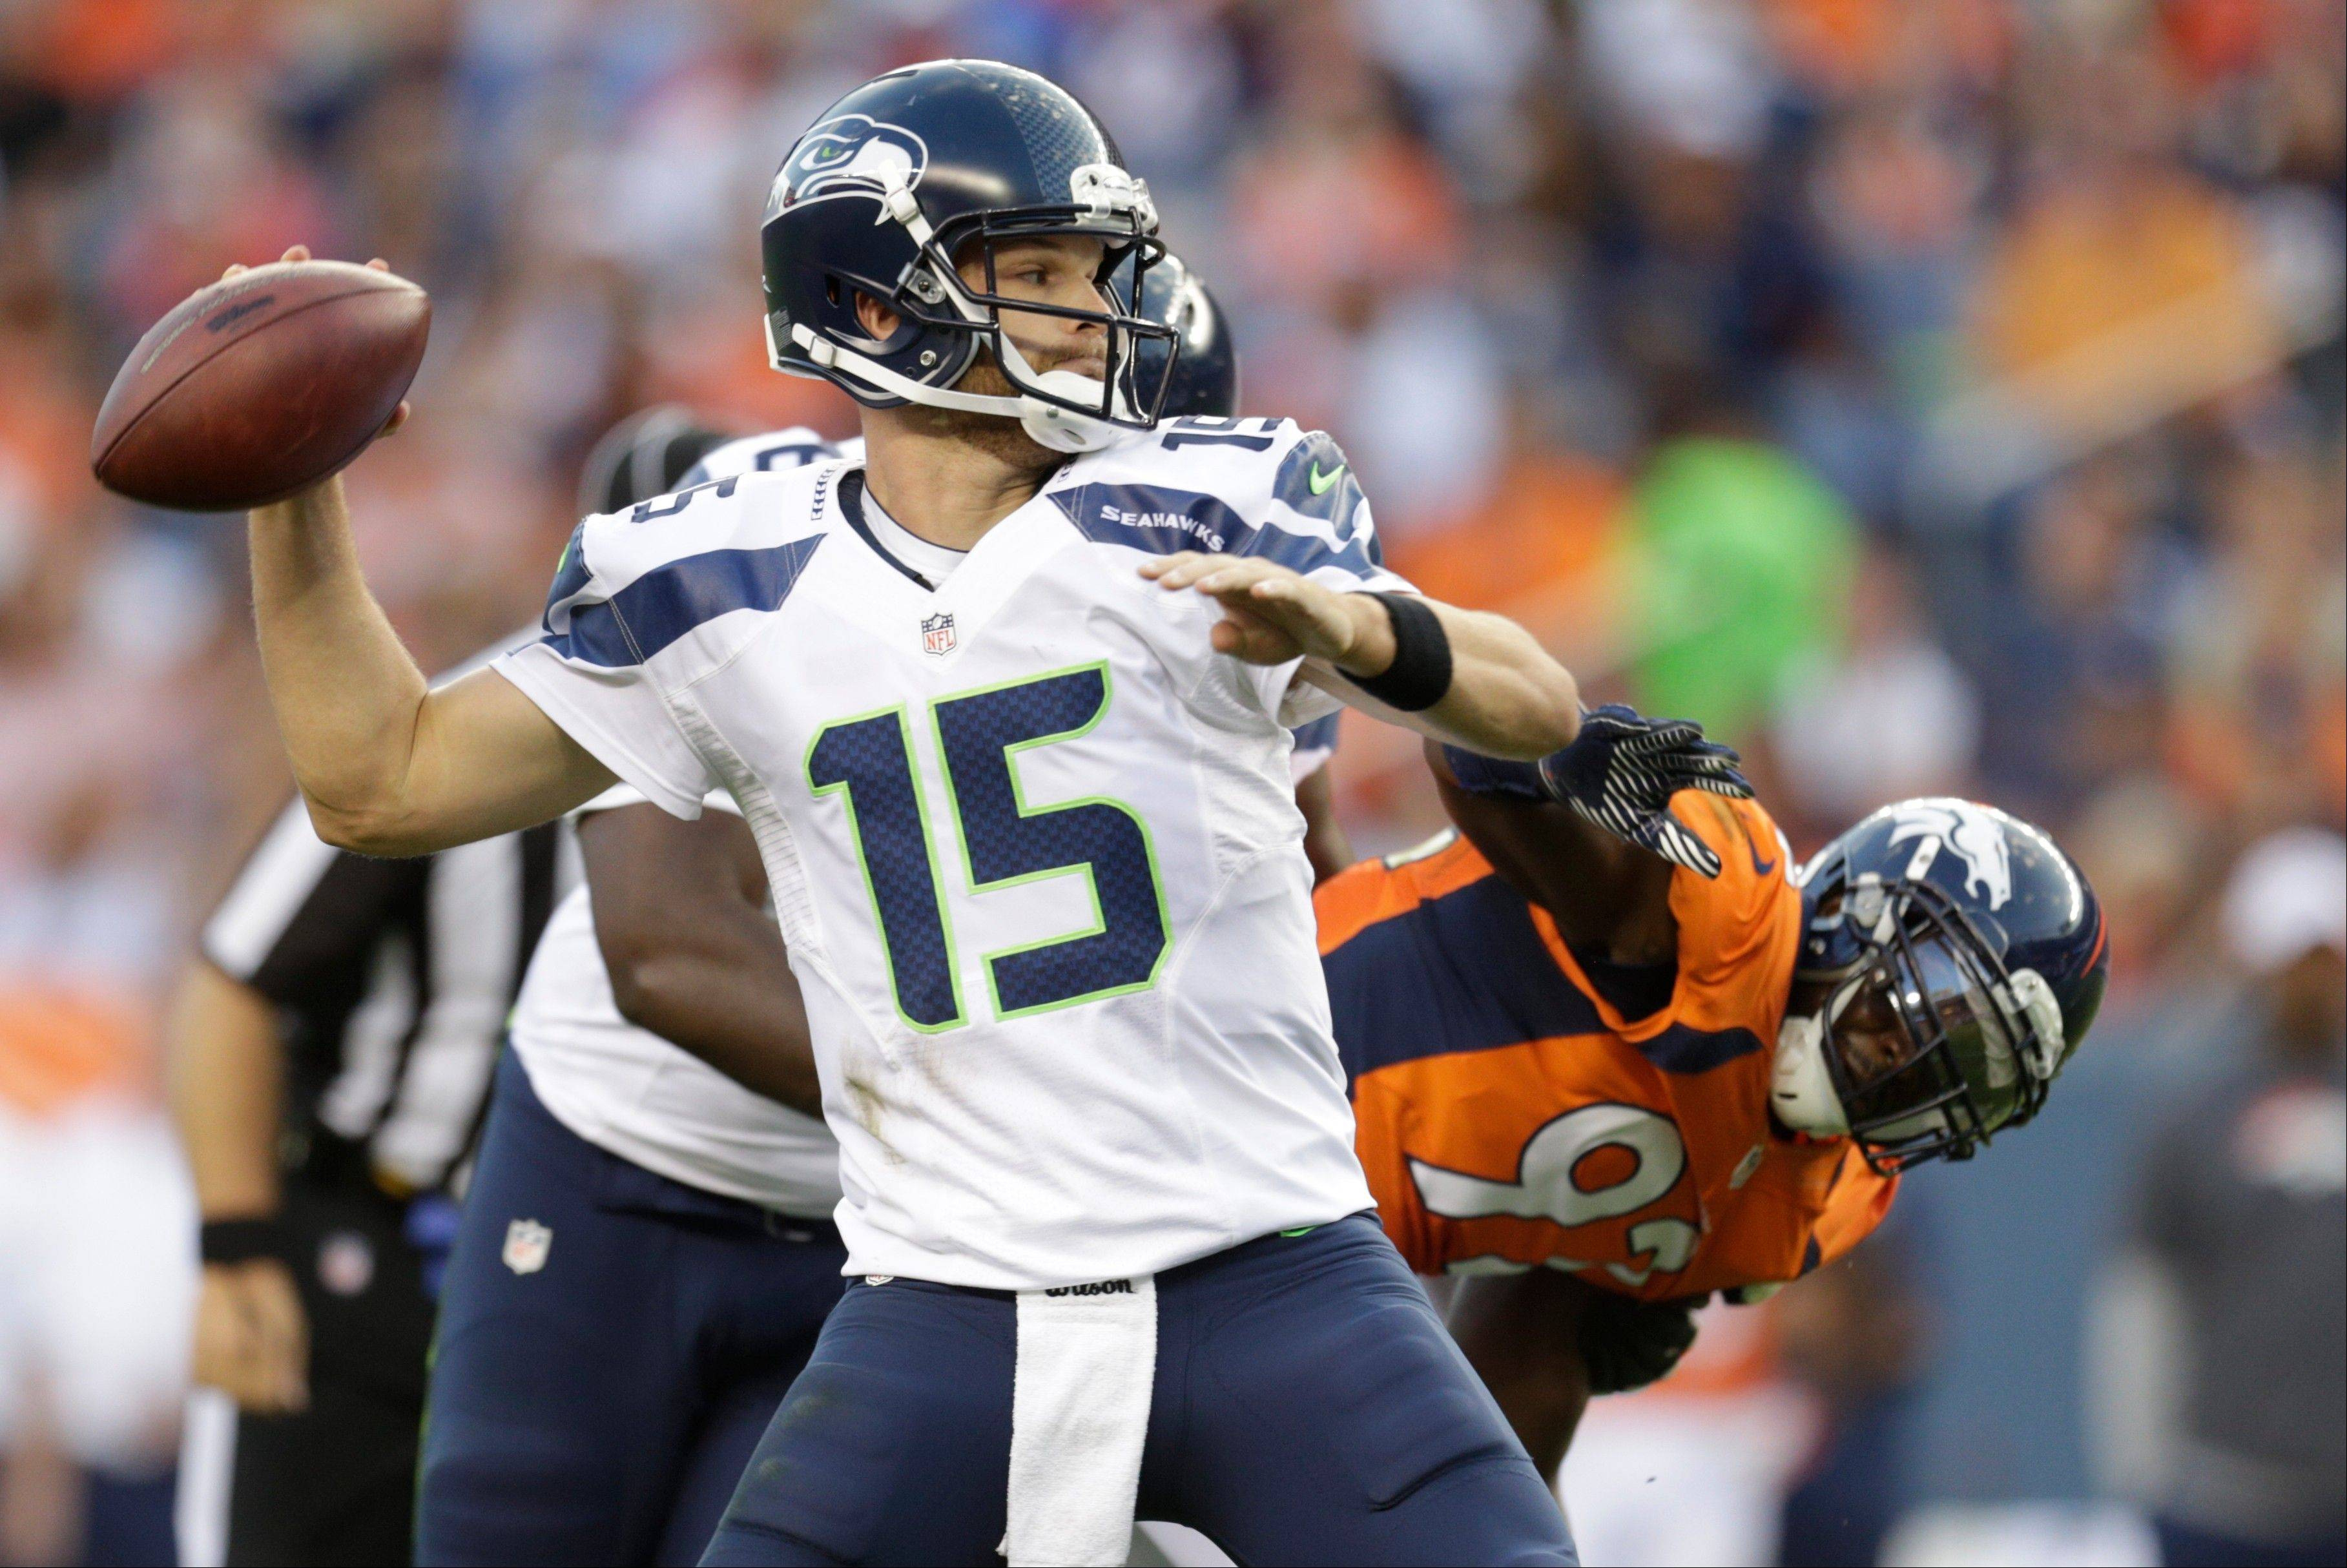 Quarterback Matt Flynn Flynn signed a three-year, $26 million deal with the Seahawks in 2012 but failed to beat out rookie Russell Wilson for the starting job. Now he�s is a member of the Oakland Raiders.